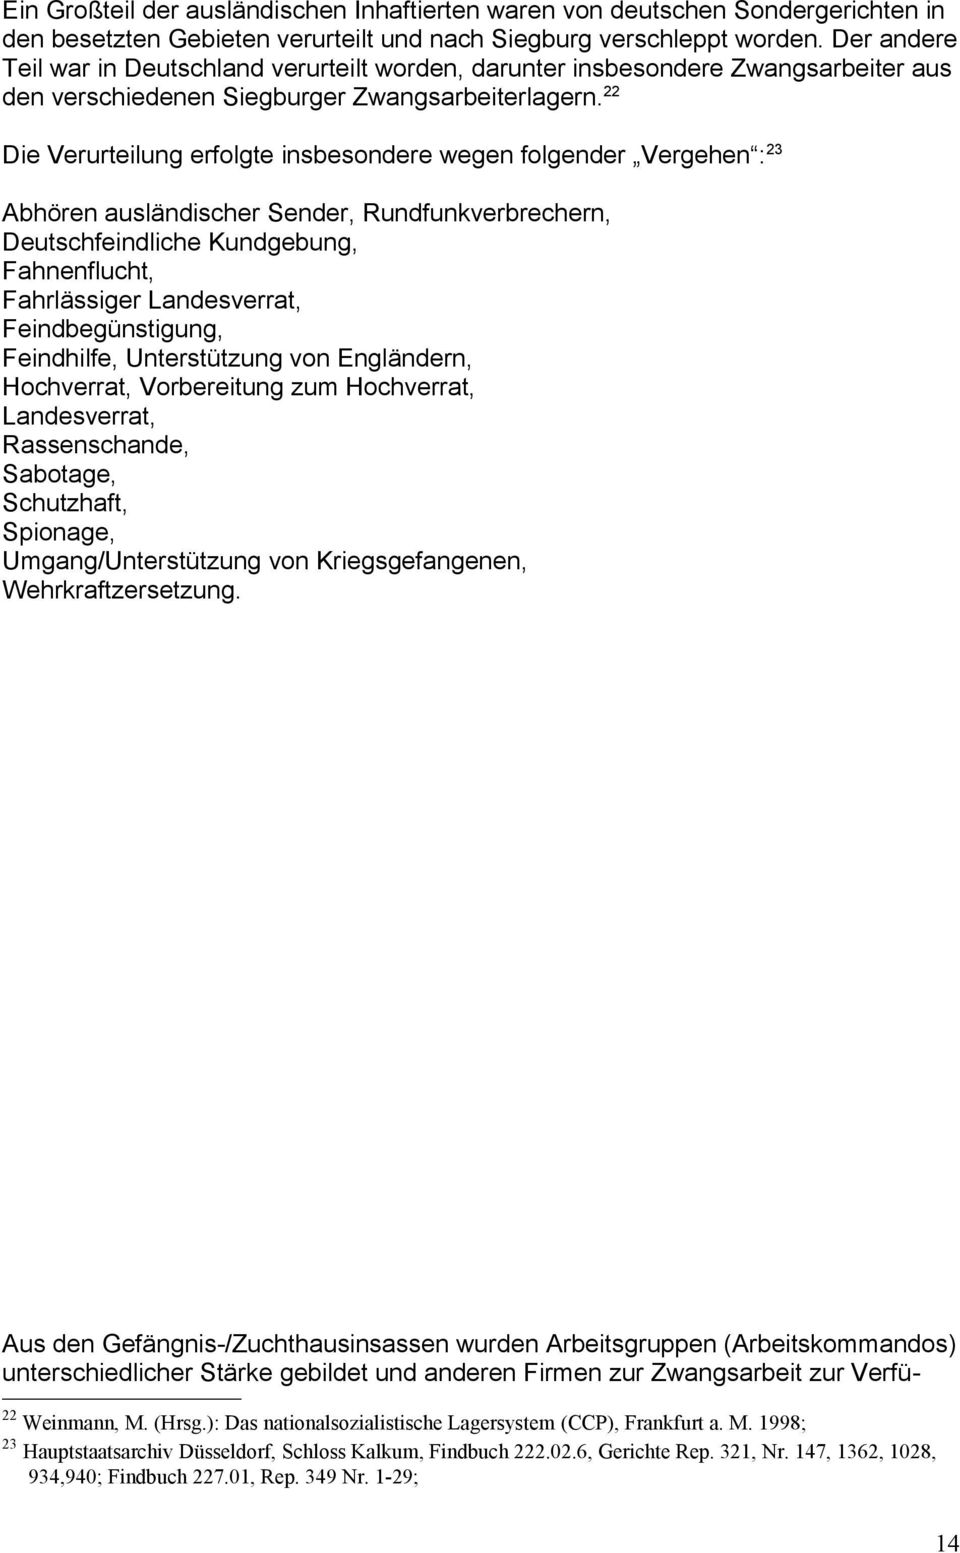 lagersysteme lehrmaterial pdf